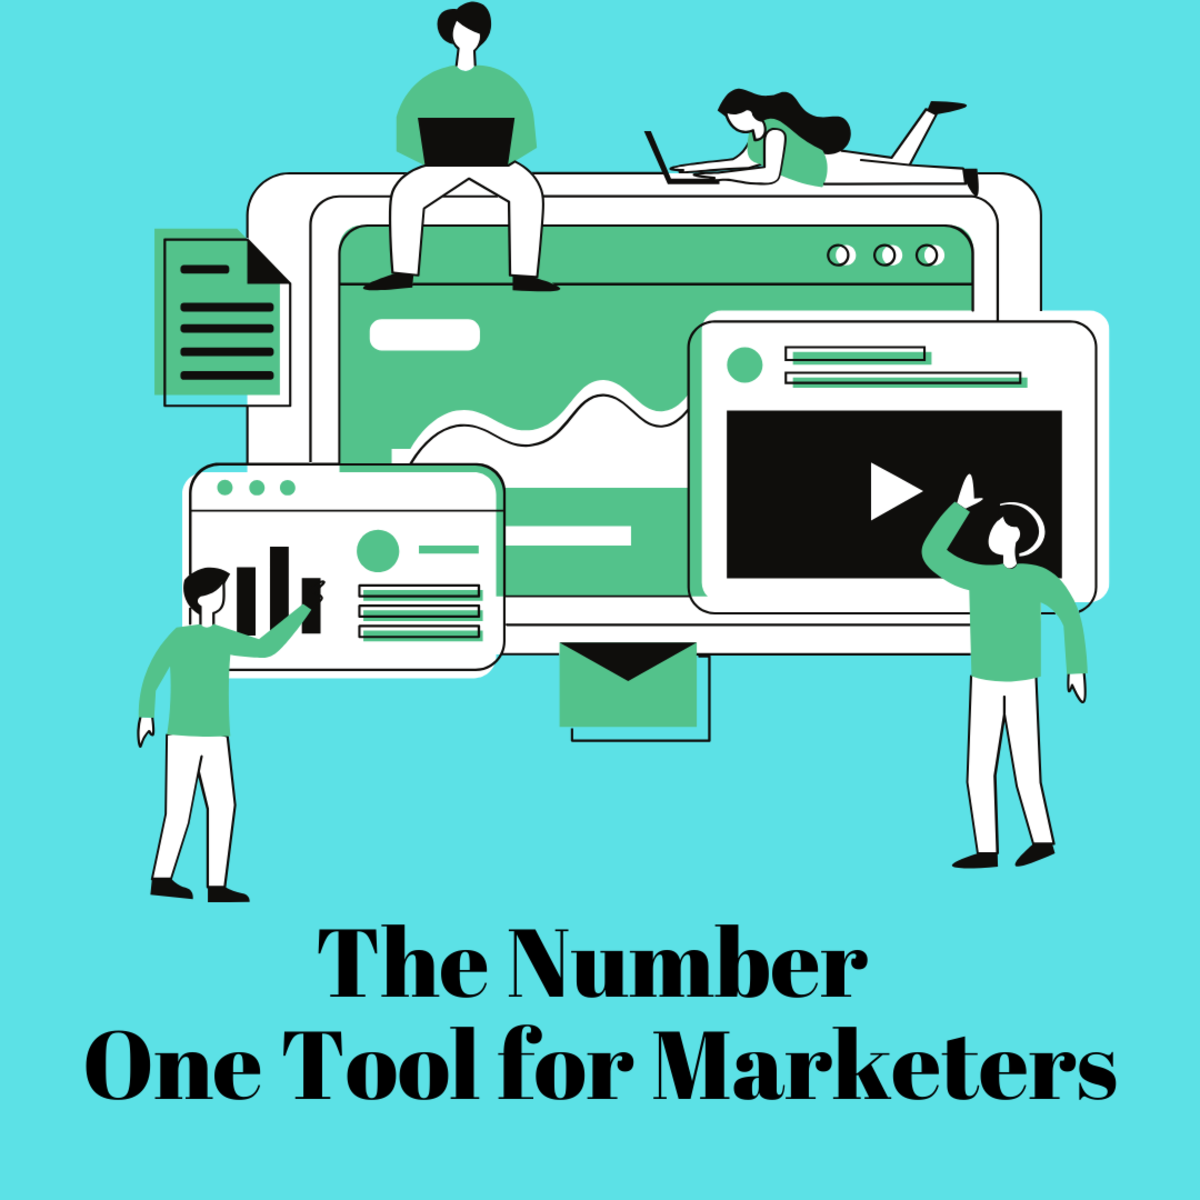 The Number One Tool for Marketers to Stay on Top of the Game